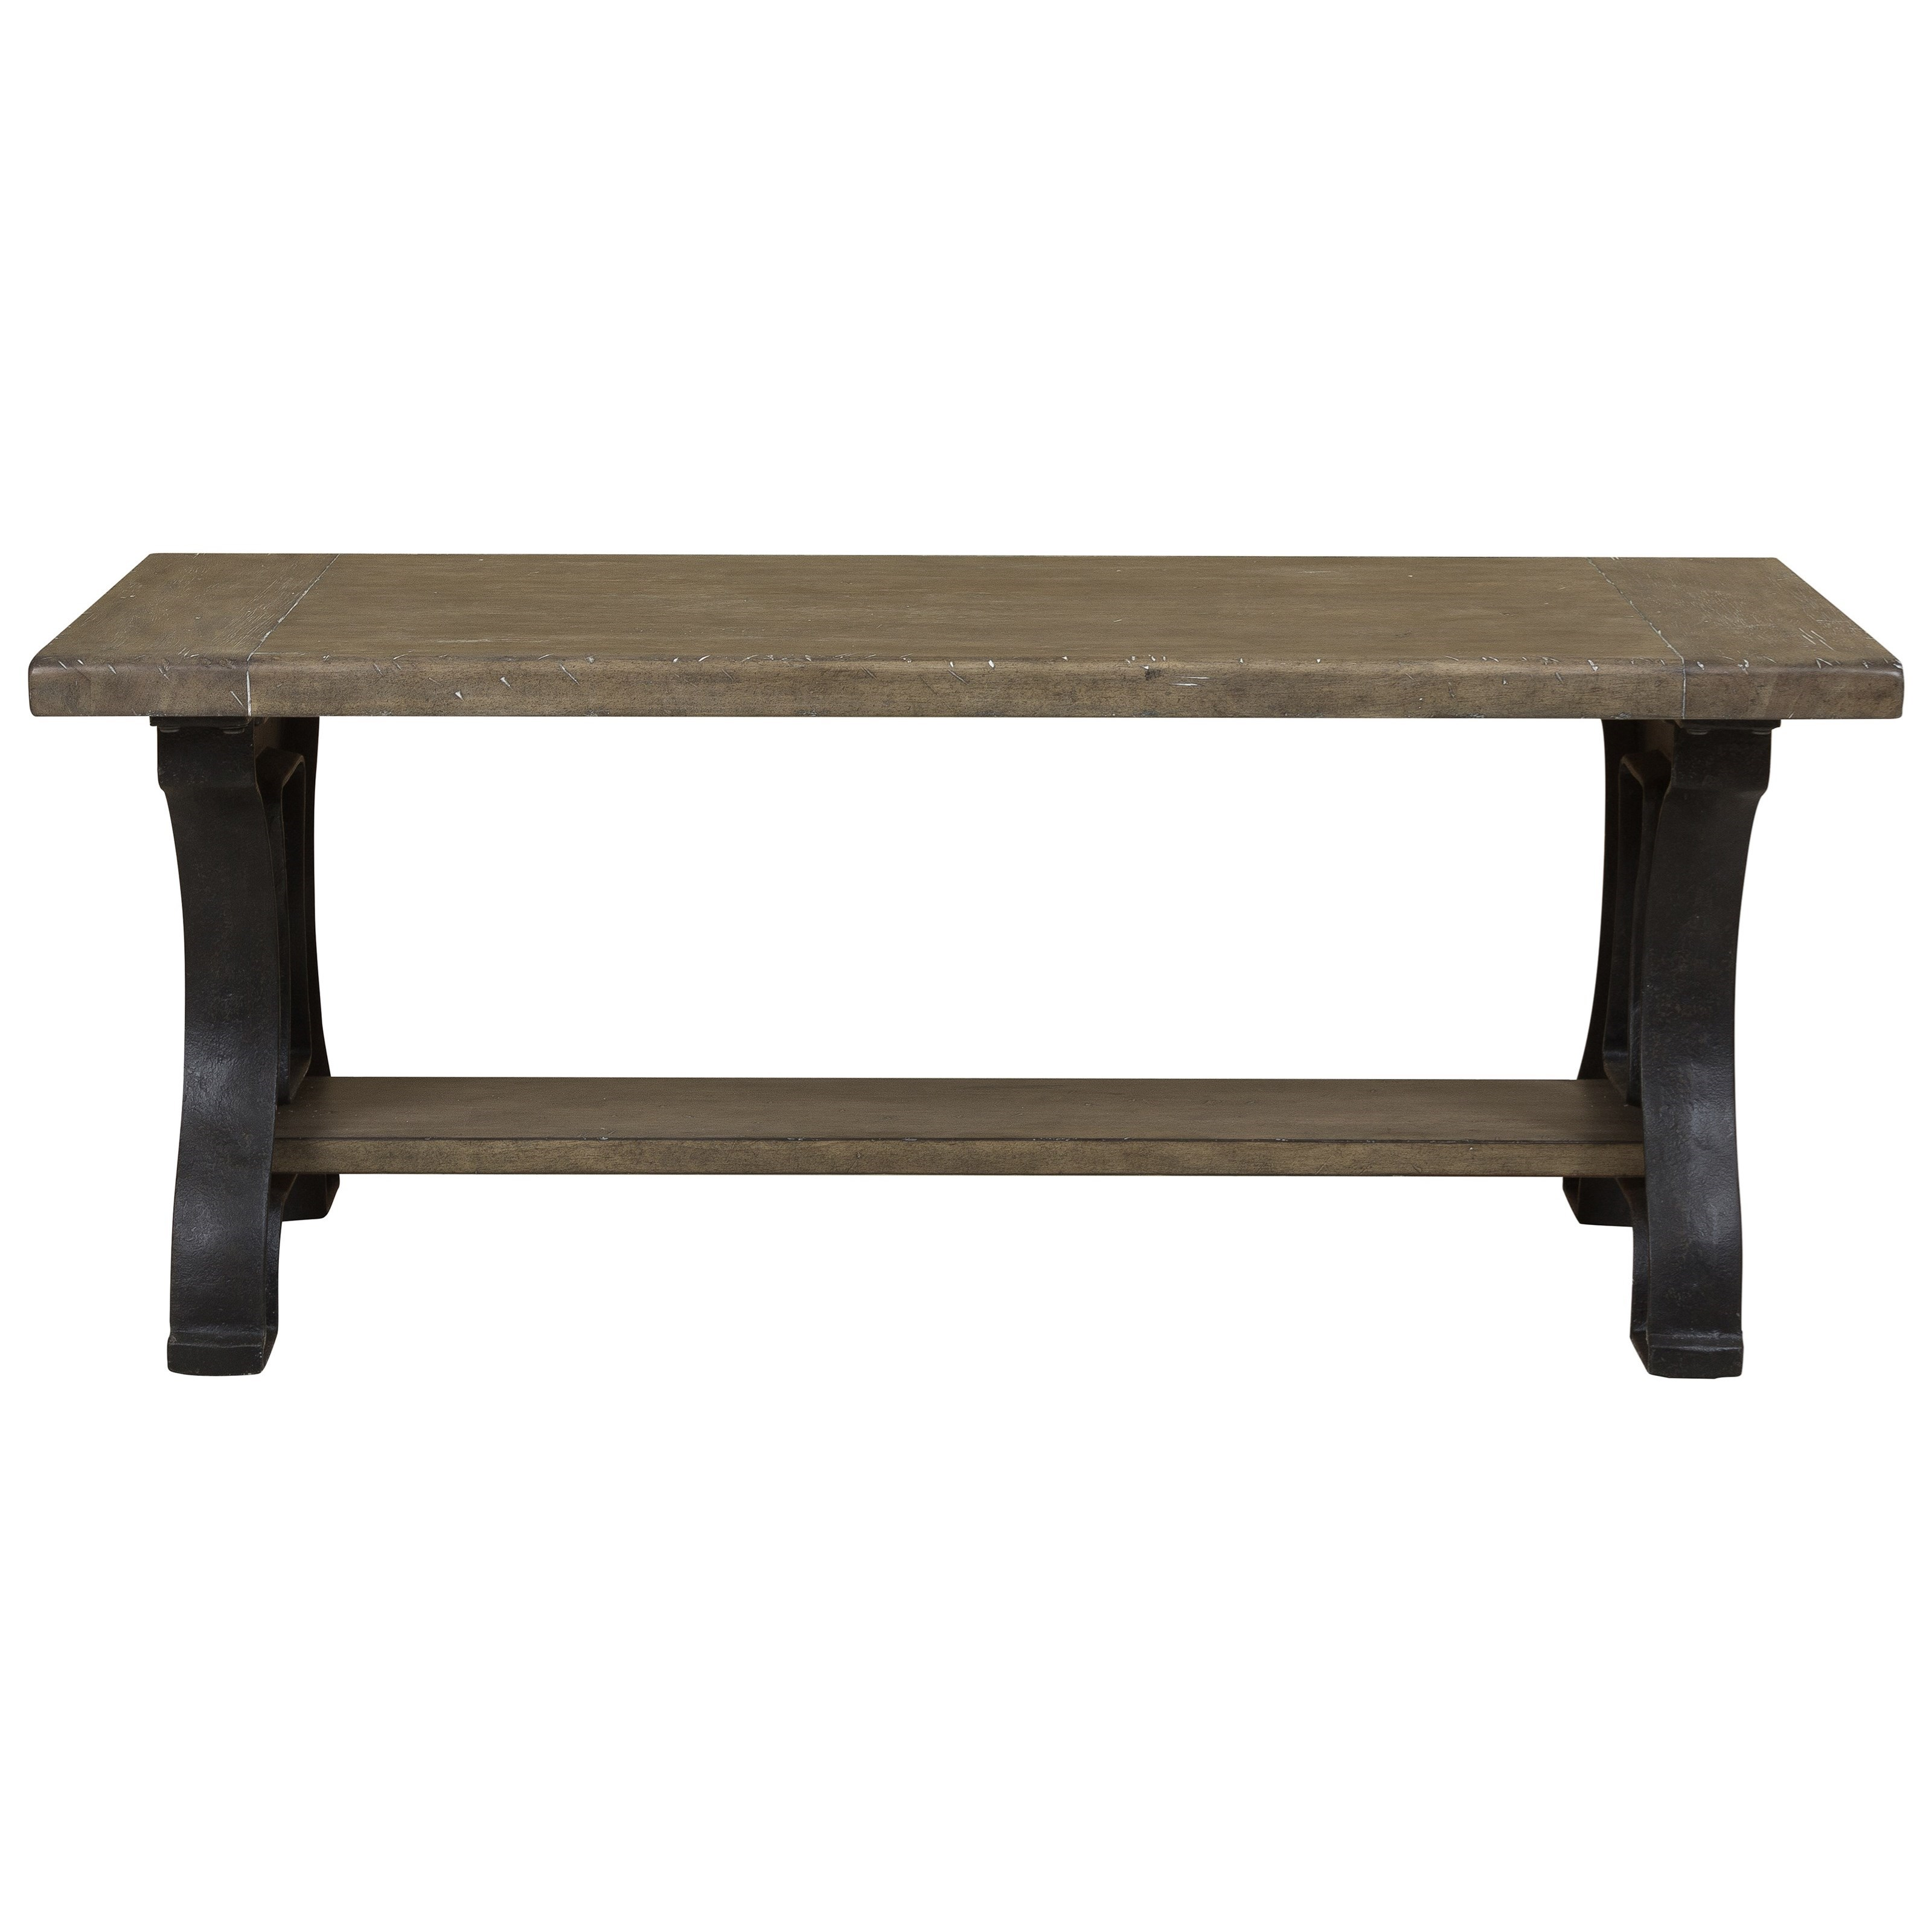 Samuel Lawrence Flatbush Bench - Item Number: S084-180A+B